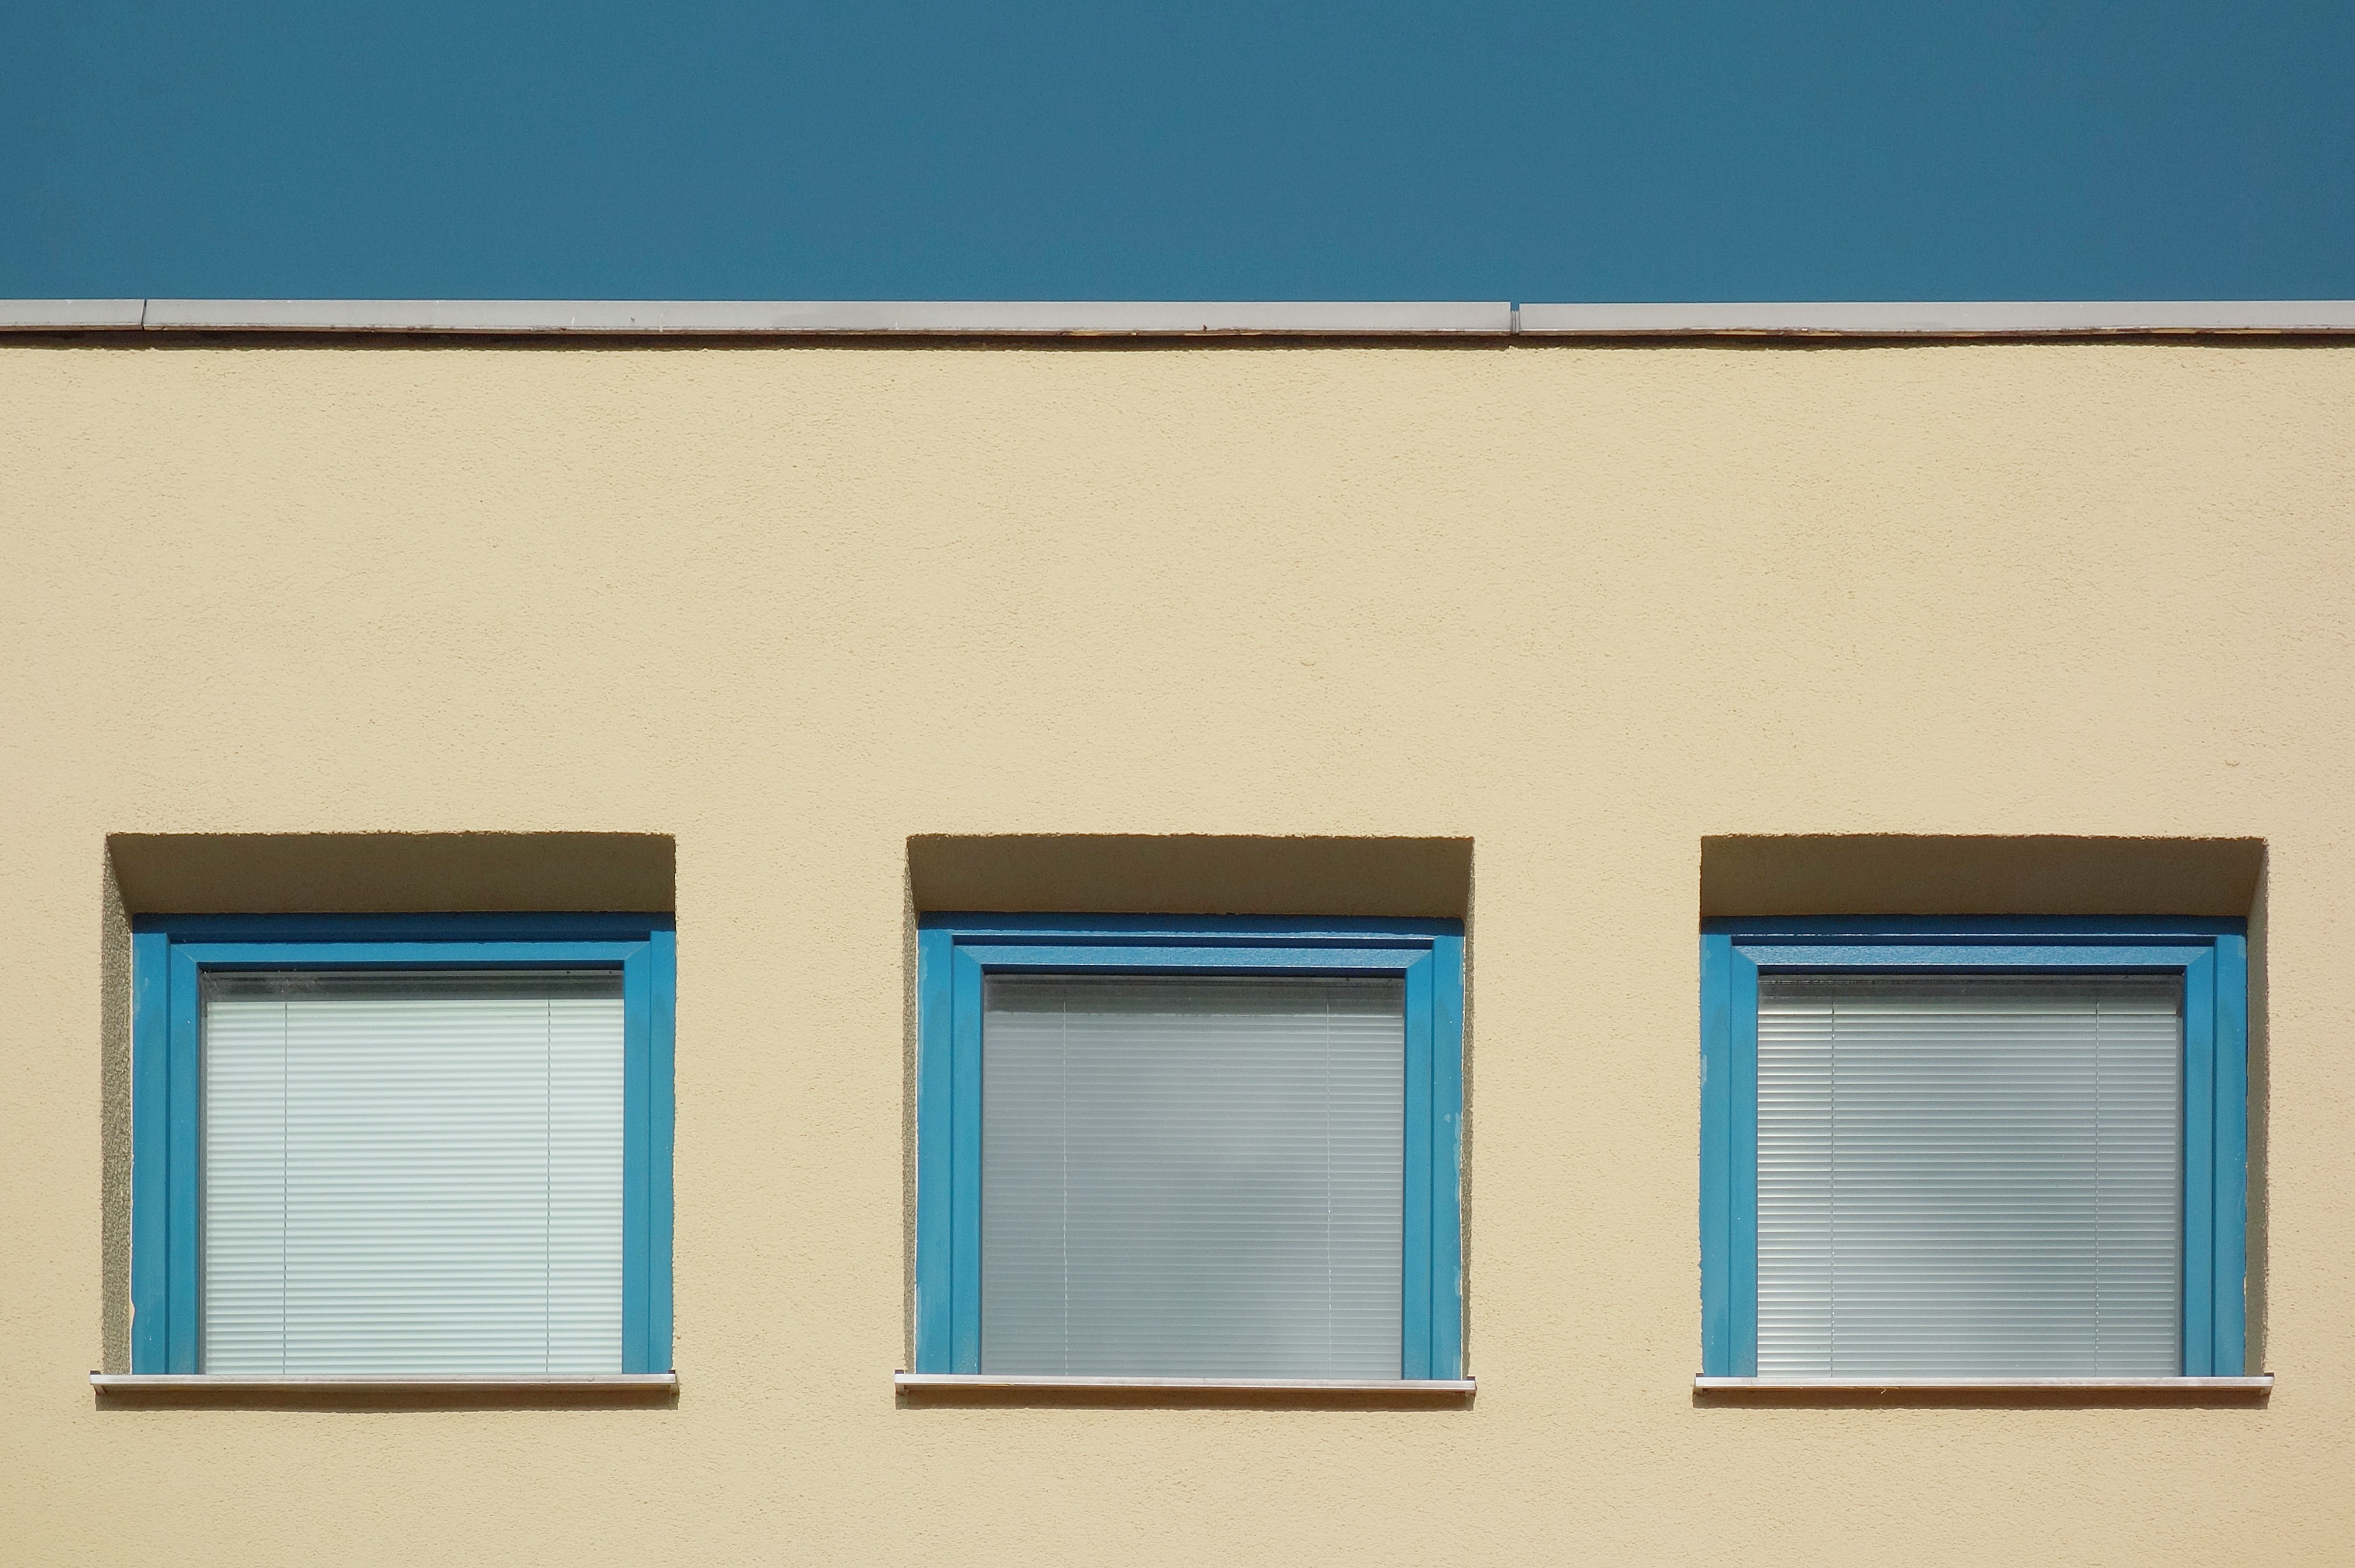 photo of three teal framed windows